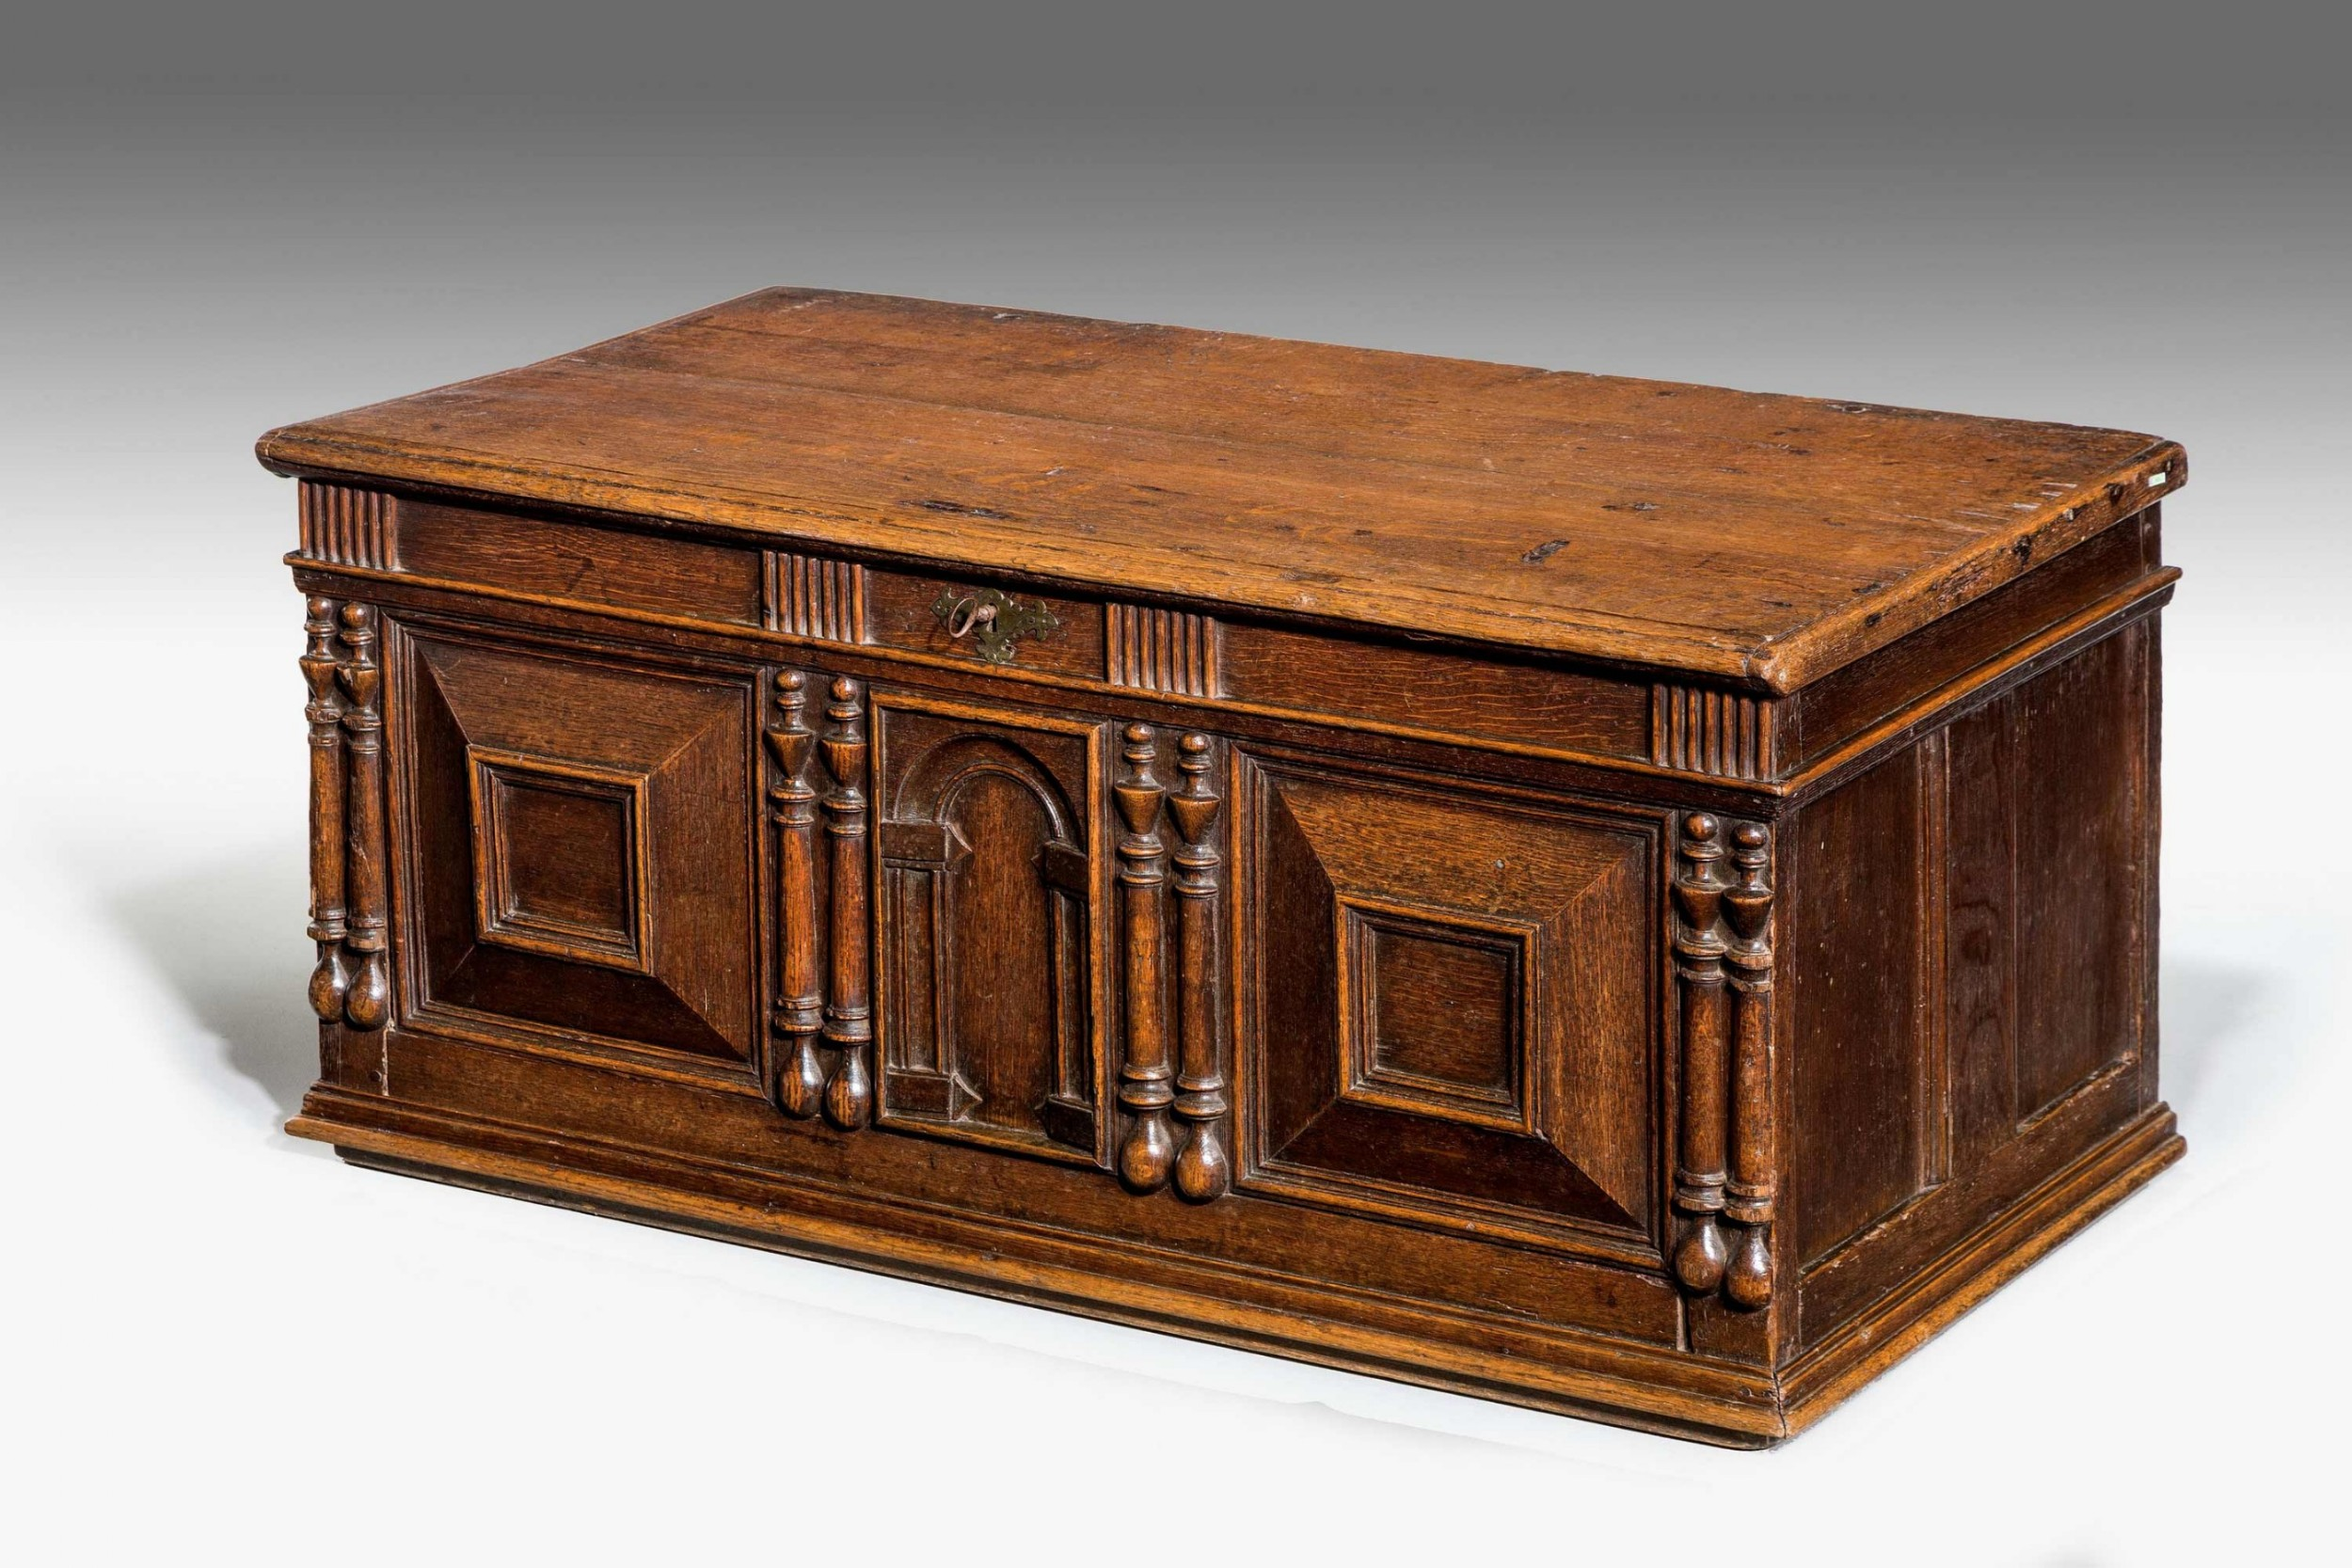 oak panelled early 18th century chest coffer